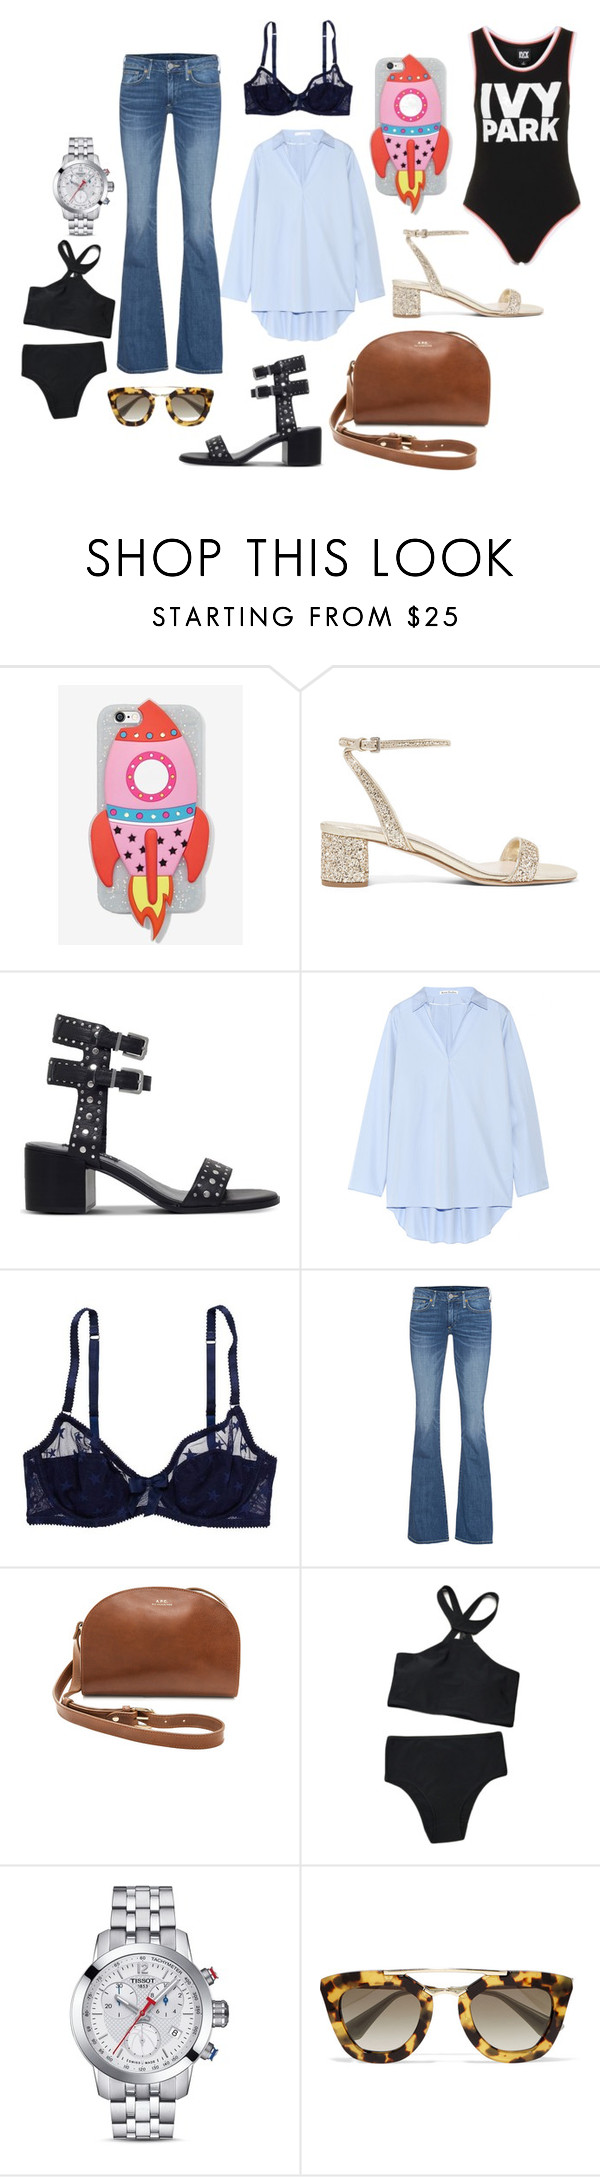 """""""May"""" by malou-malou ❤ liked on Polyvore featuring Skinnydip, Miu Miu, Senso, Acne Studios, American Eagle Outfitters, True Religion, A.P.C., Tissot, Prada and Ivy Park"""